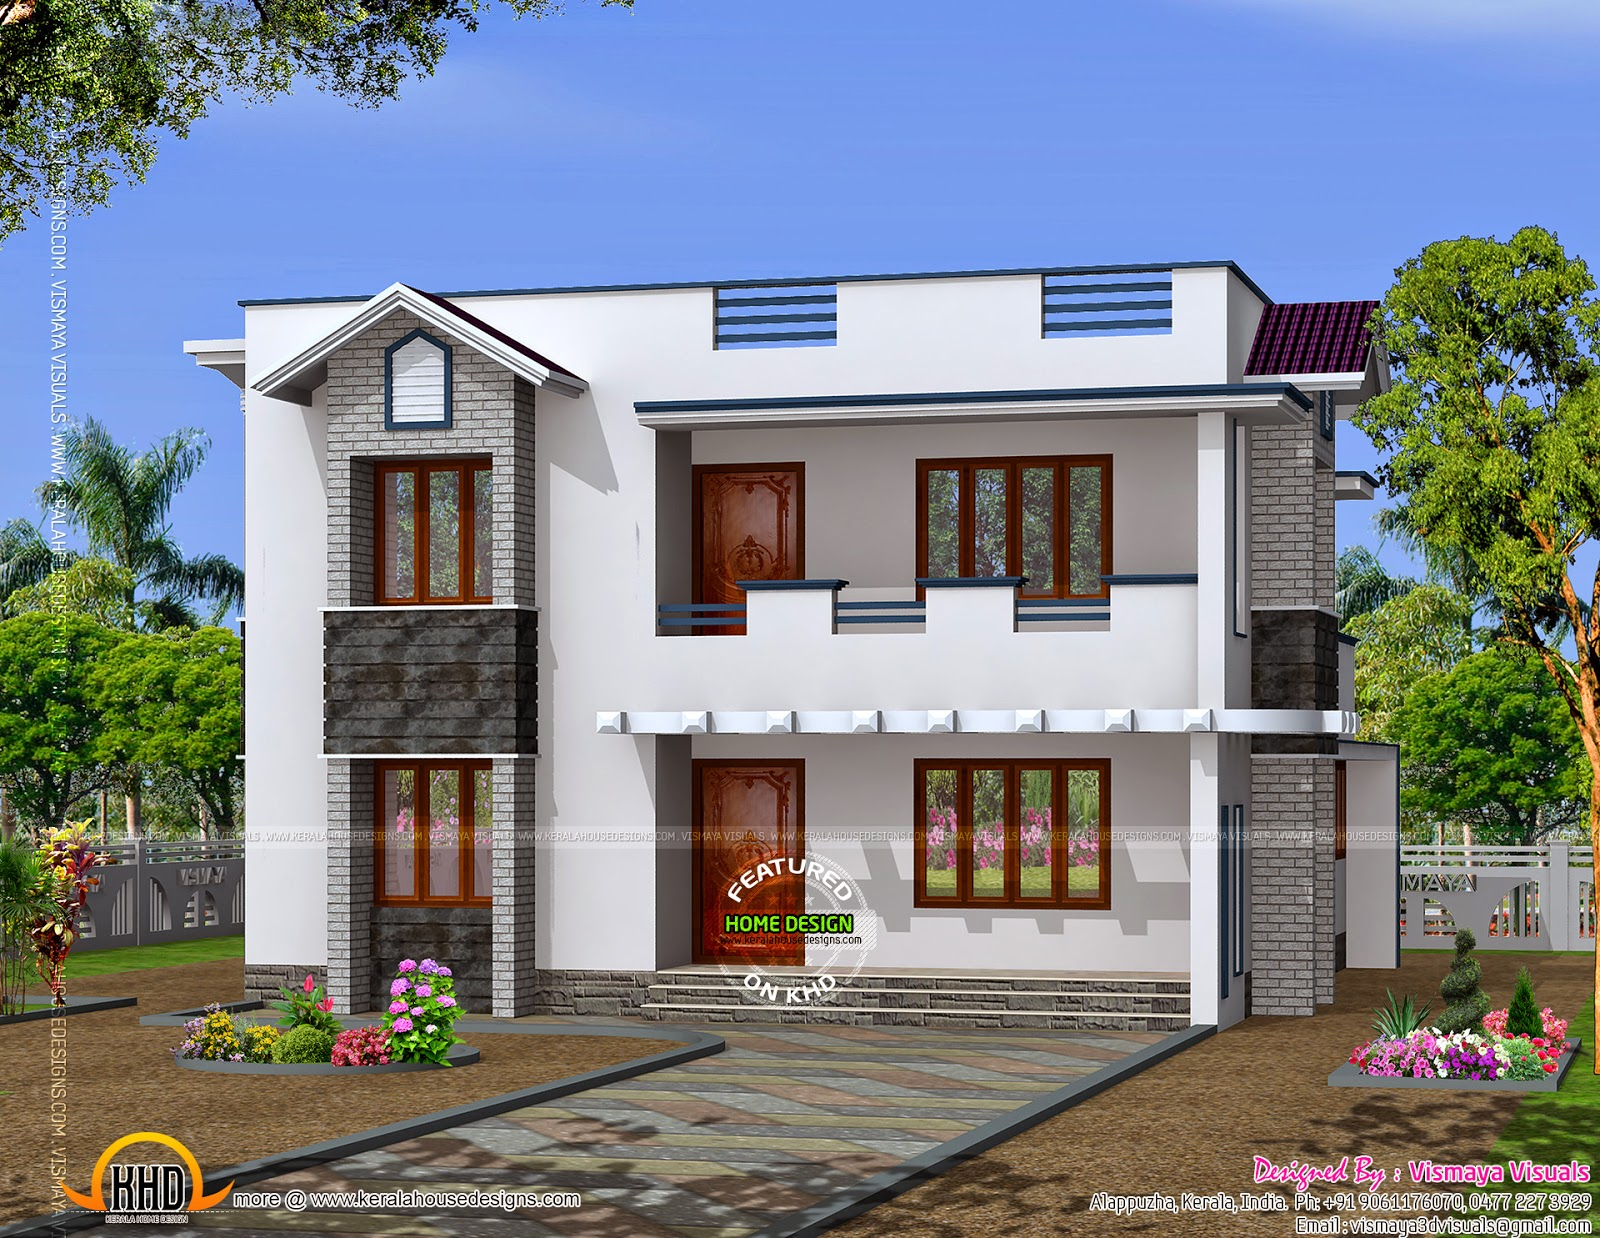 Simple design home kerala home design and floor plans for Easy home plans